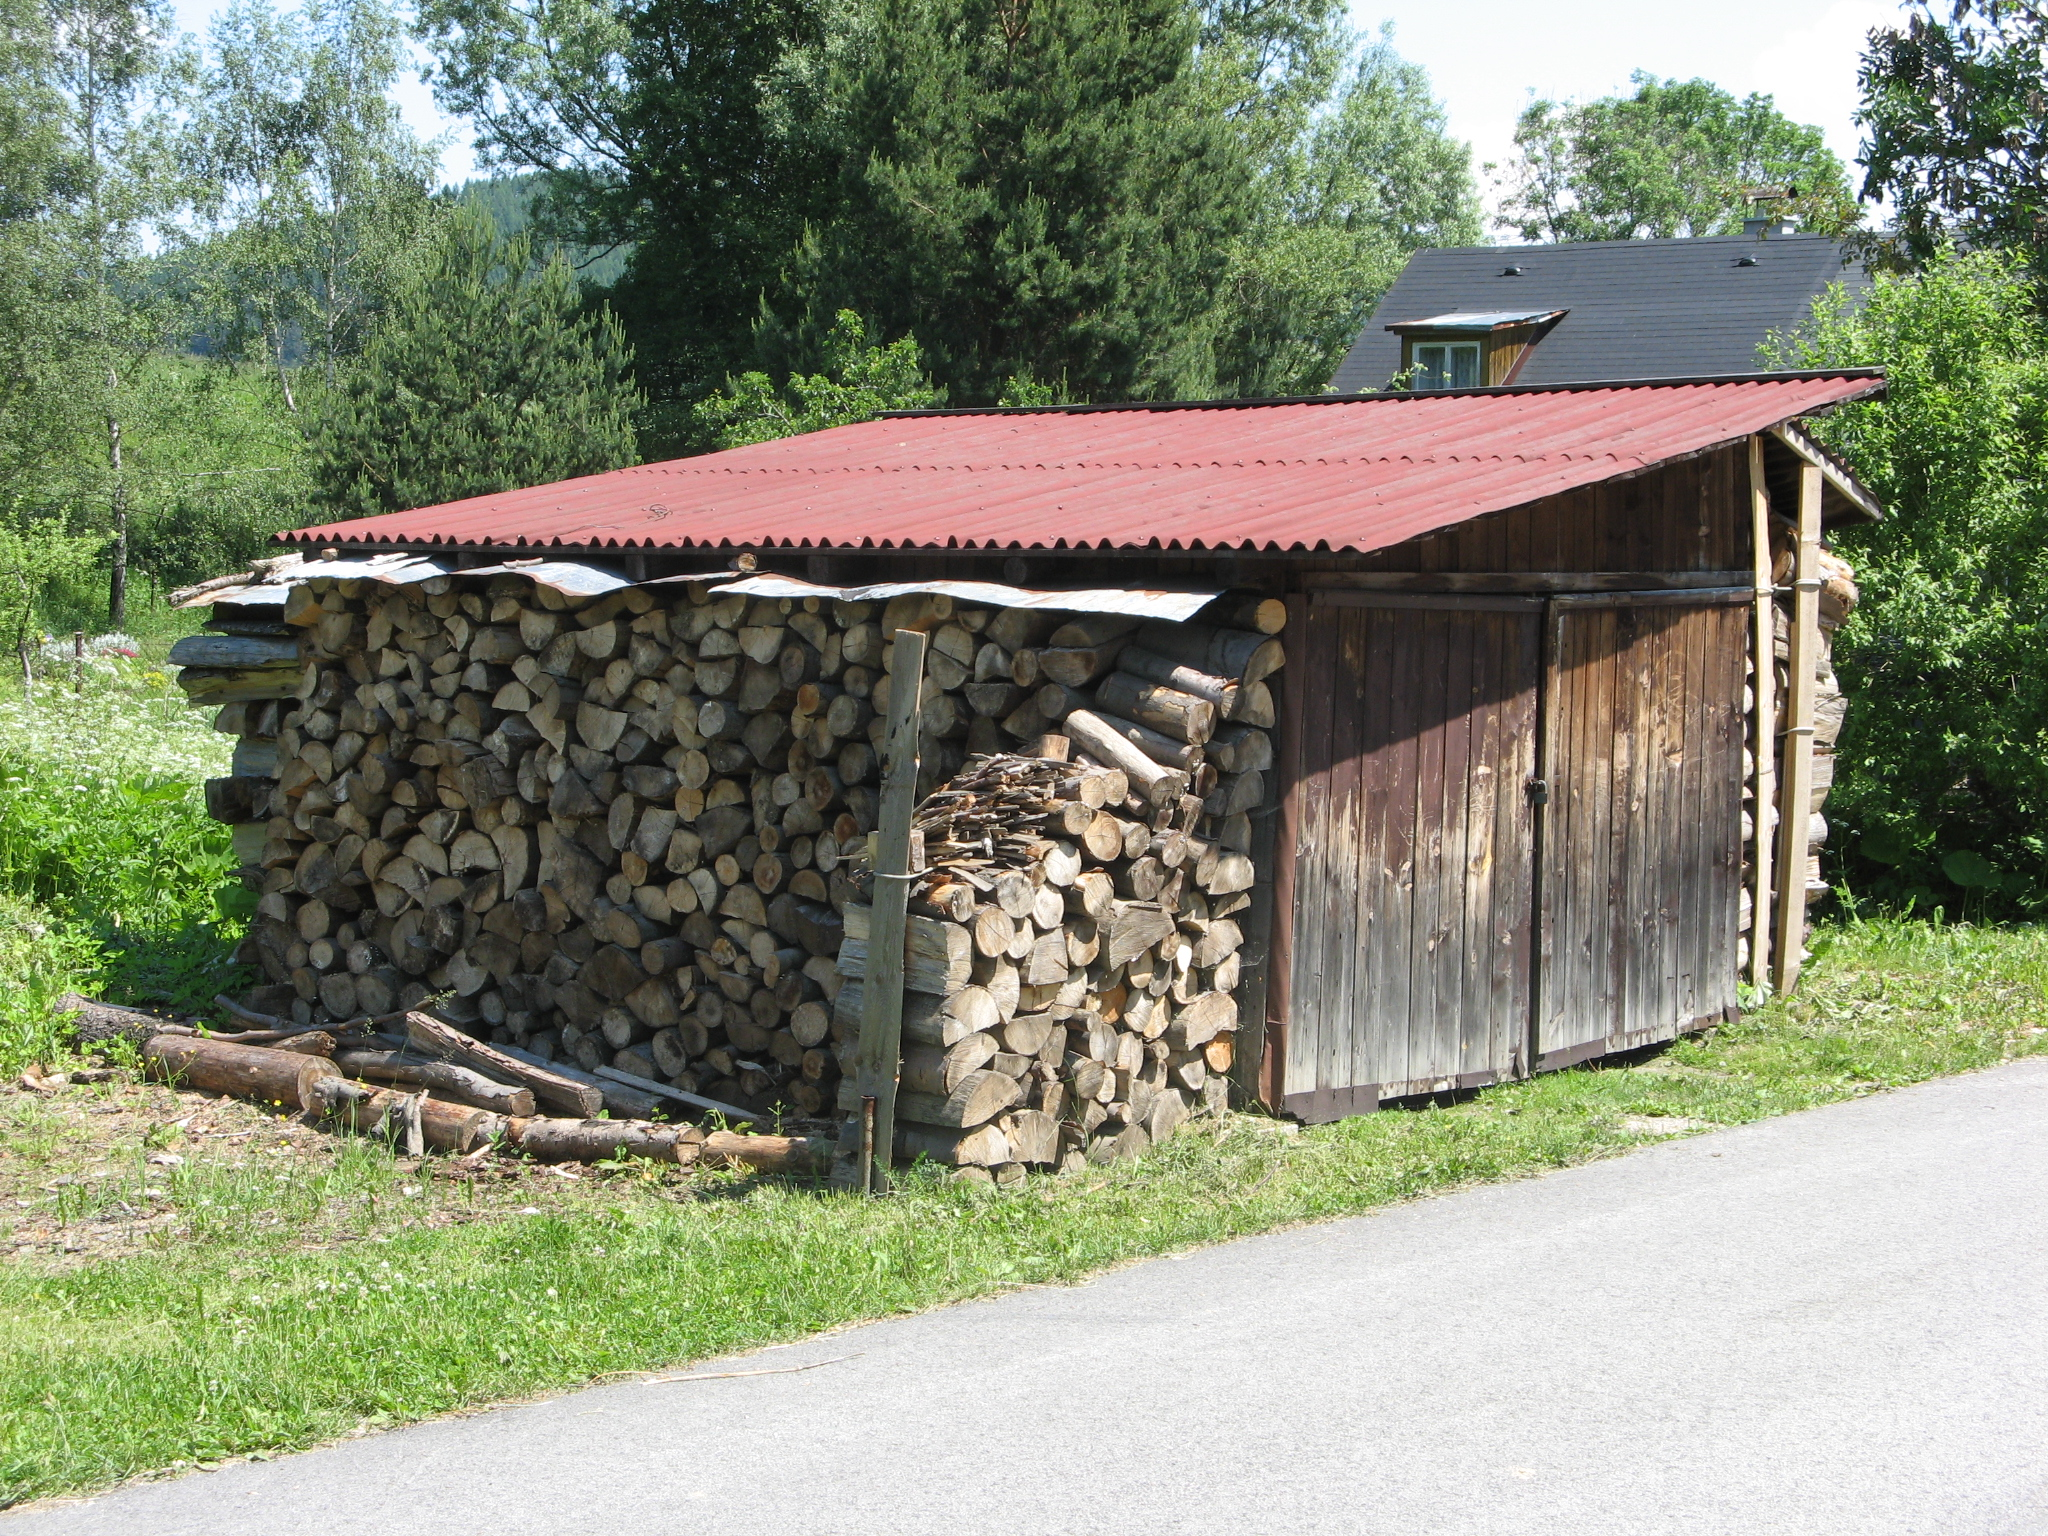 File:Storage shack of wood.JPG - Wikimedia Commons